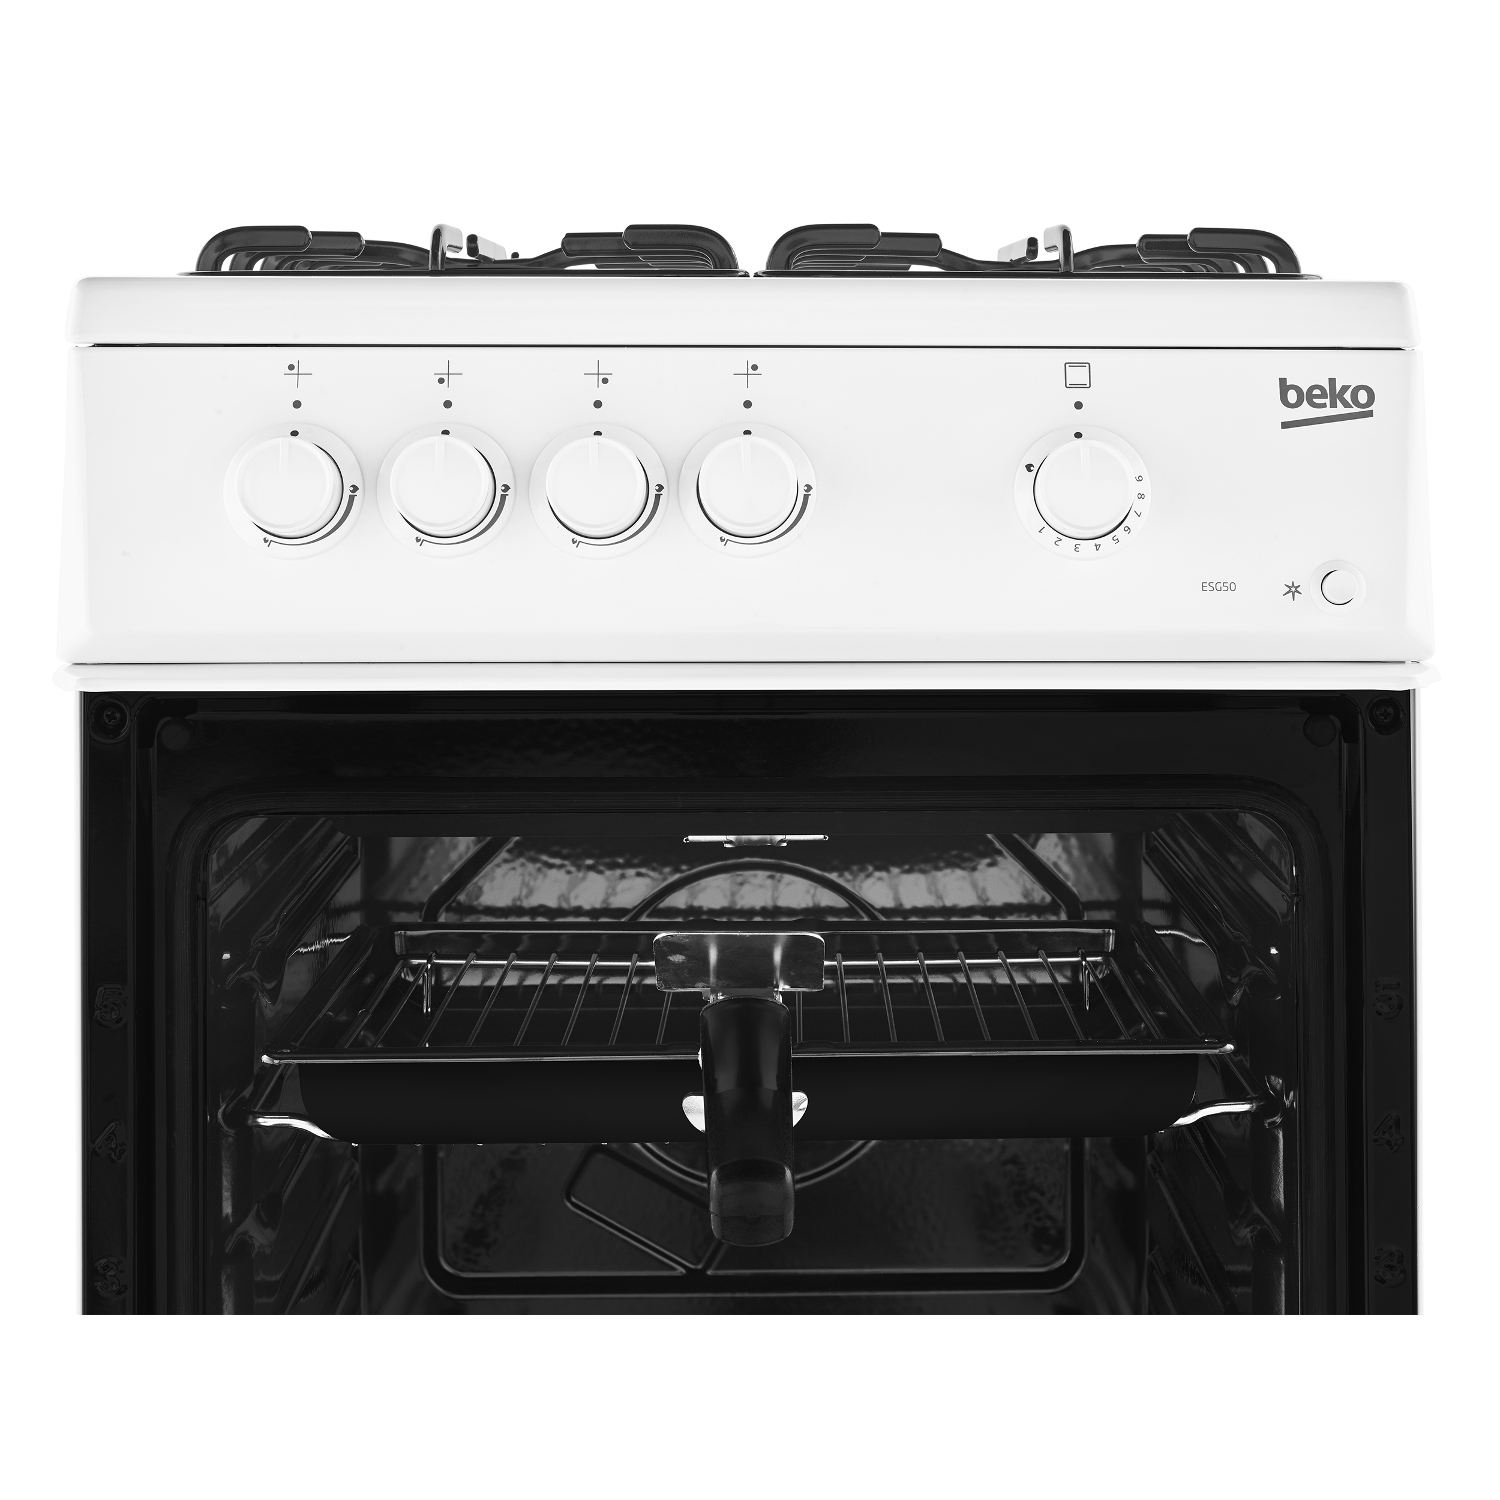 Beko 50cm Single Oven Gas Cooker - White - 5